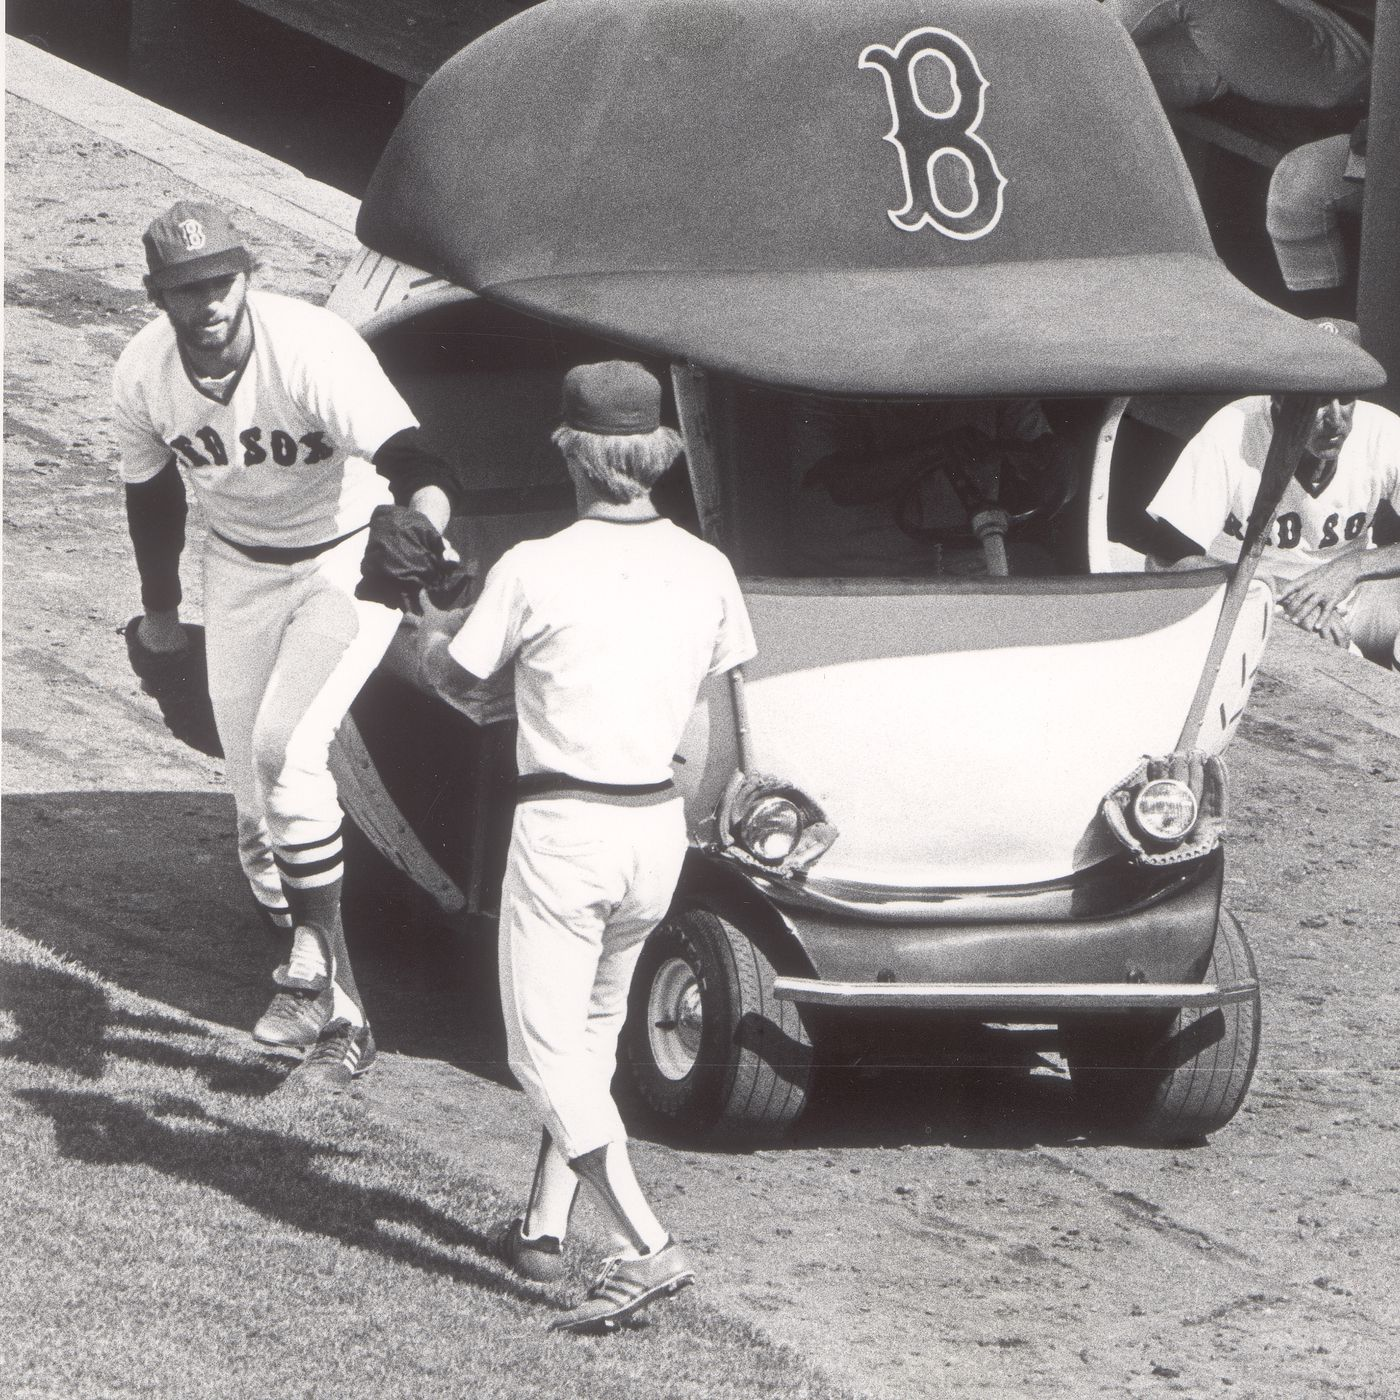 The possible return of the bullpen cart is the most important